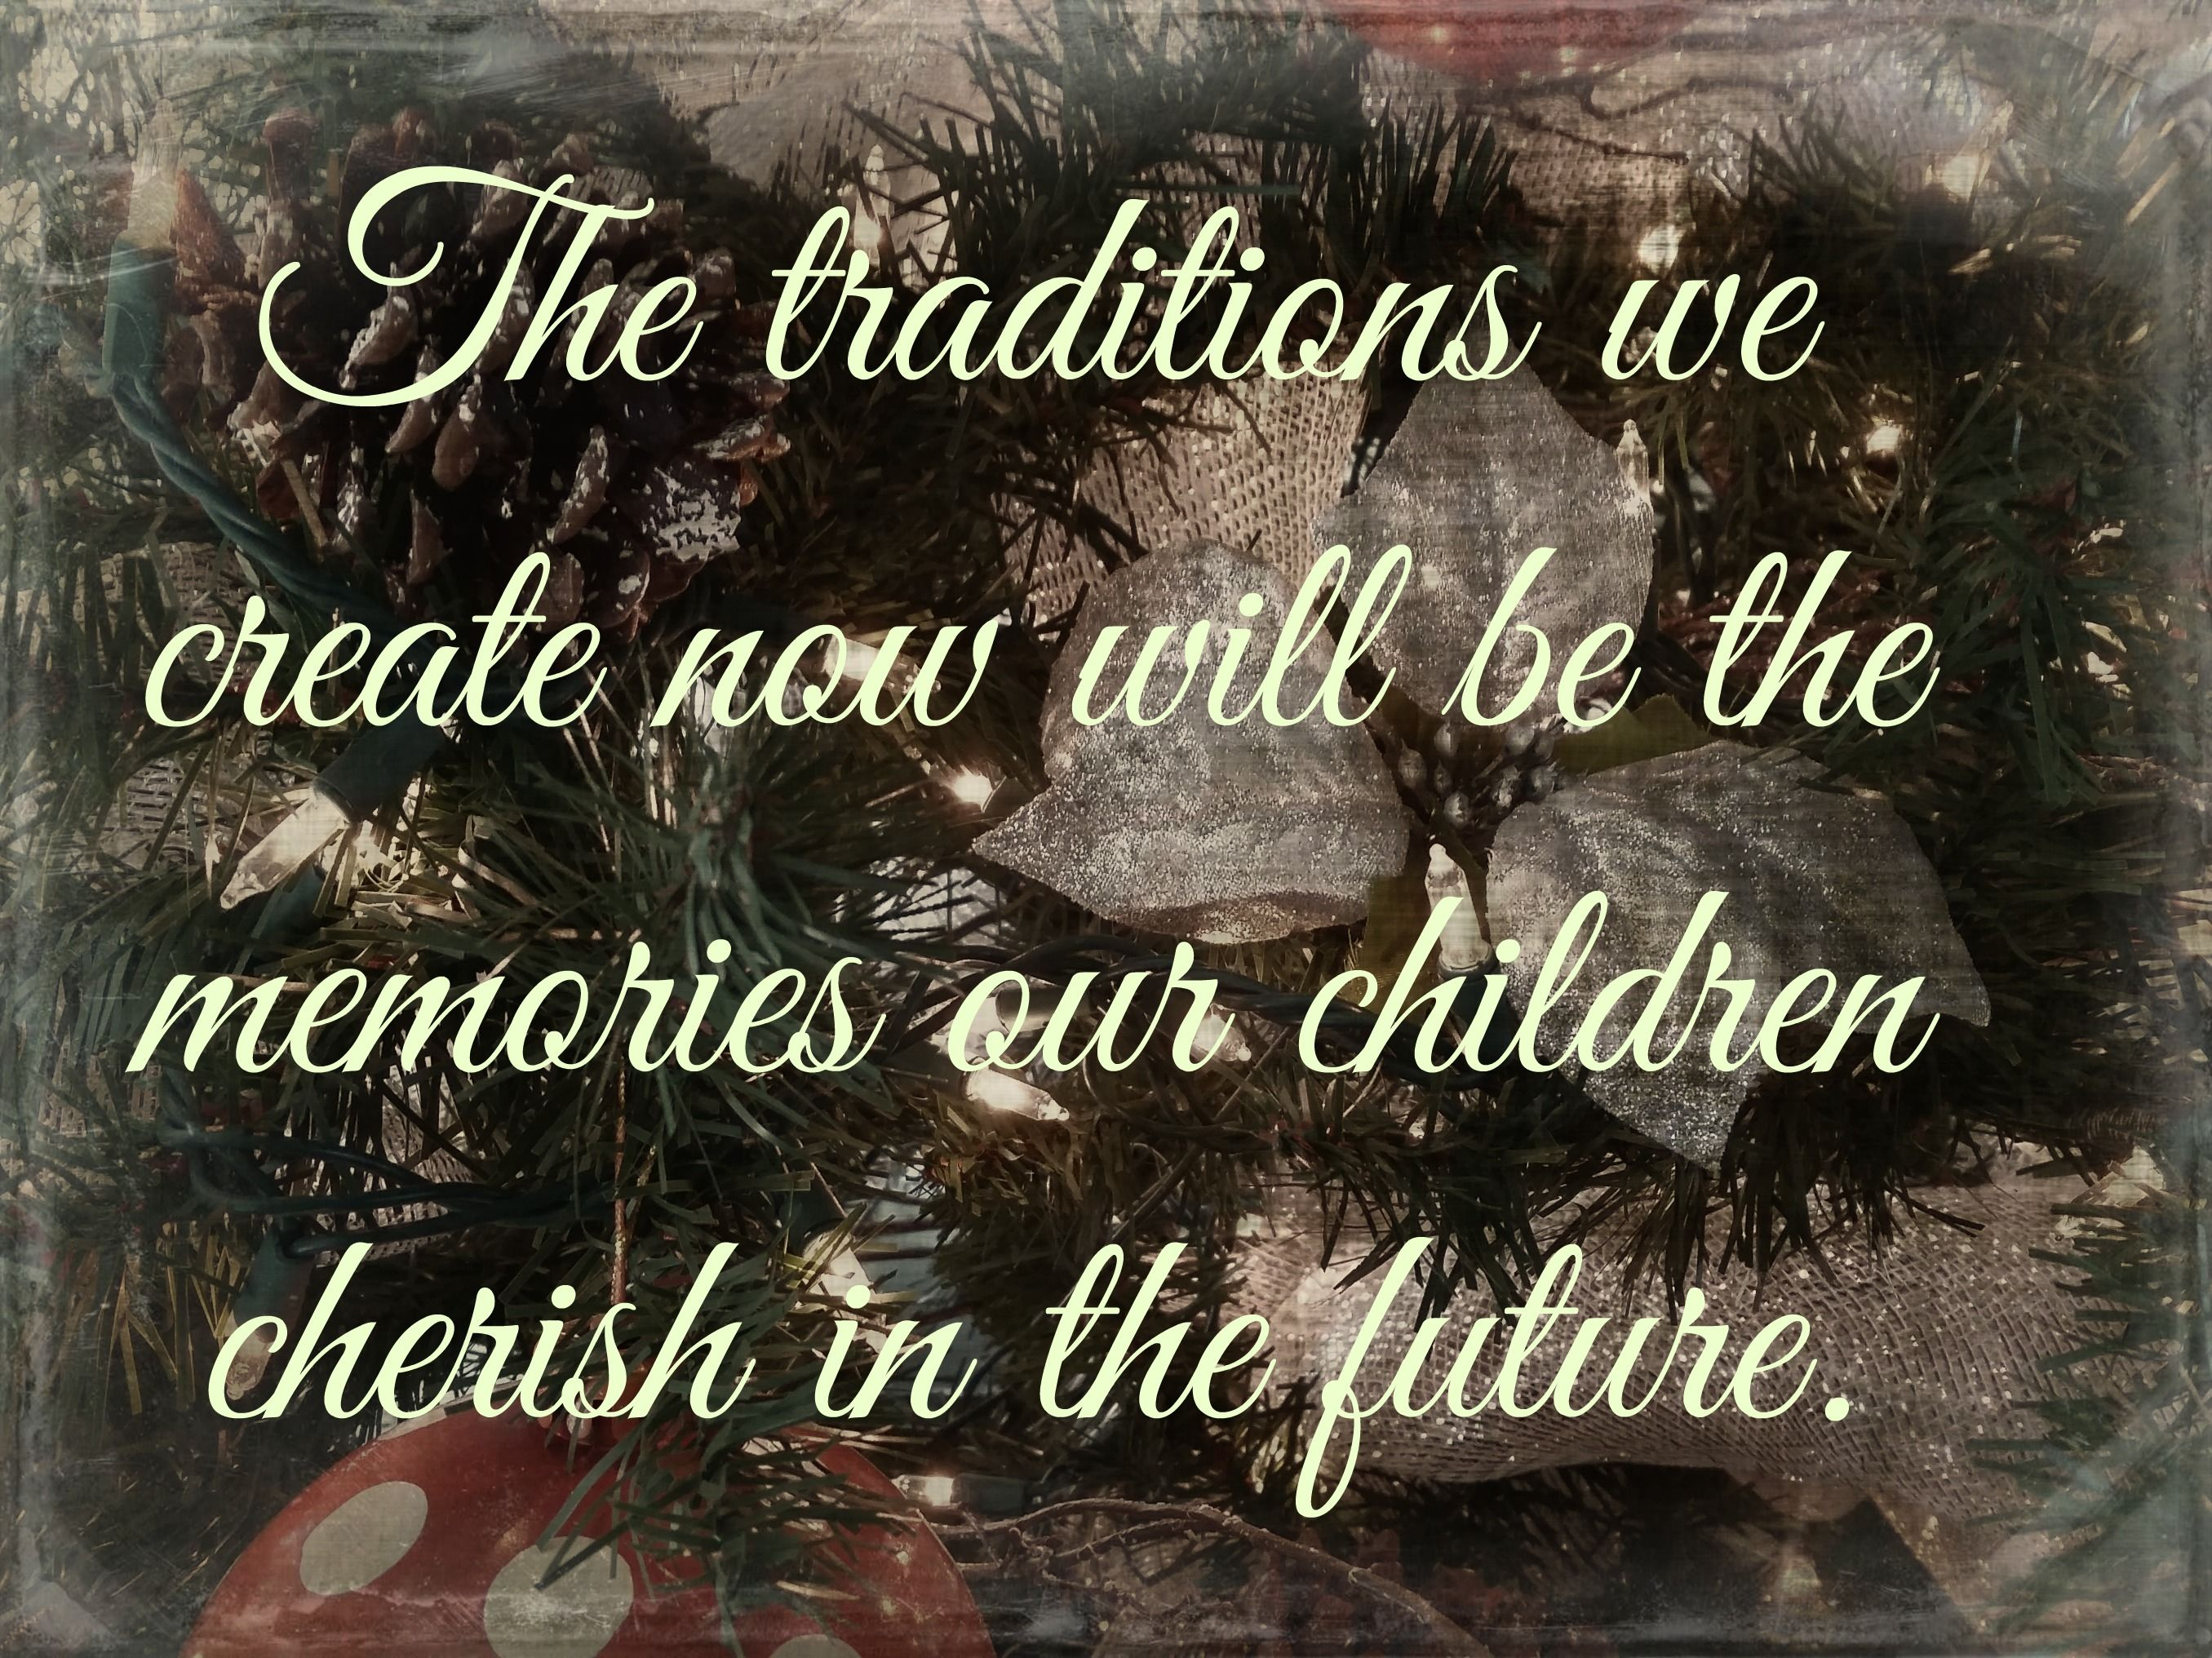 a favorite christmas tradition tradition quotes christmas